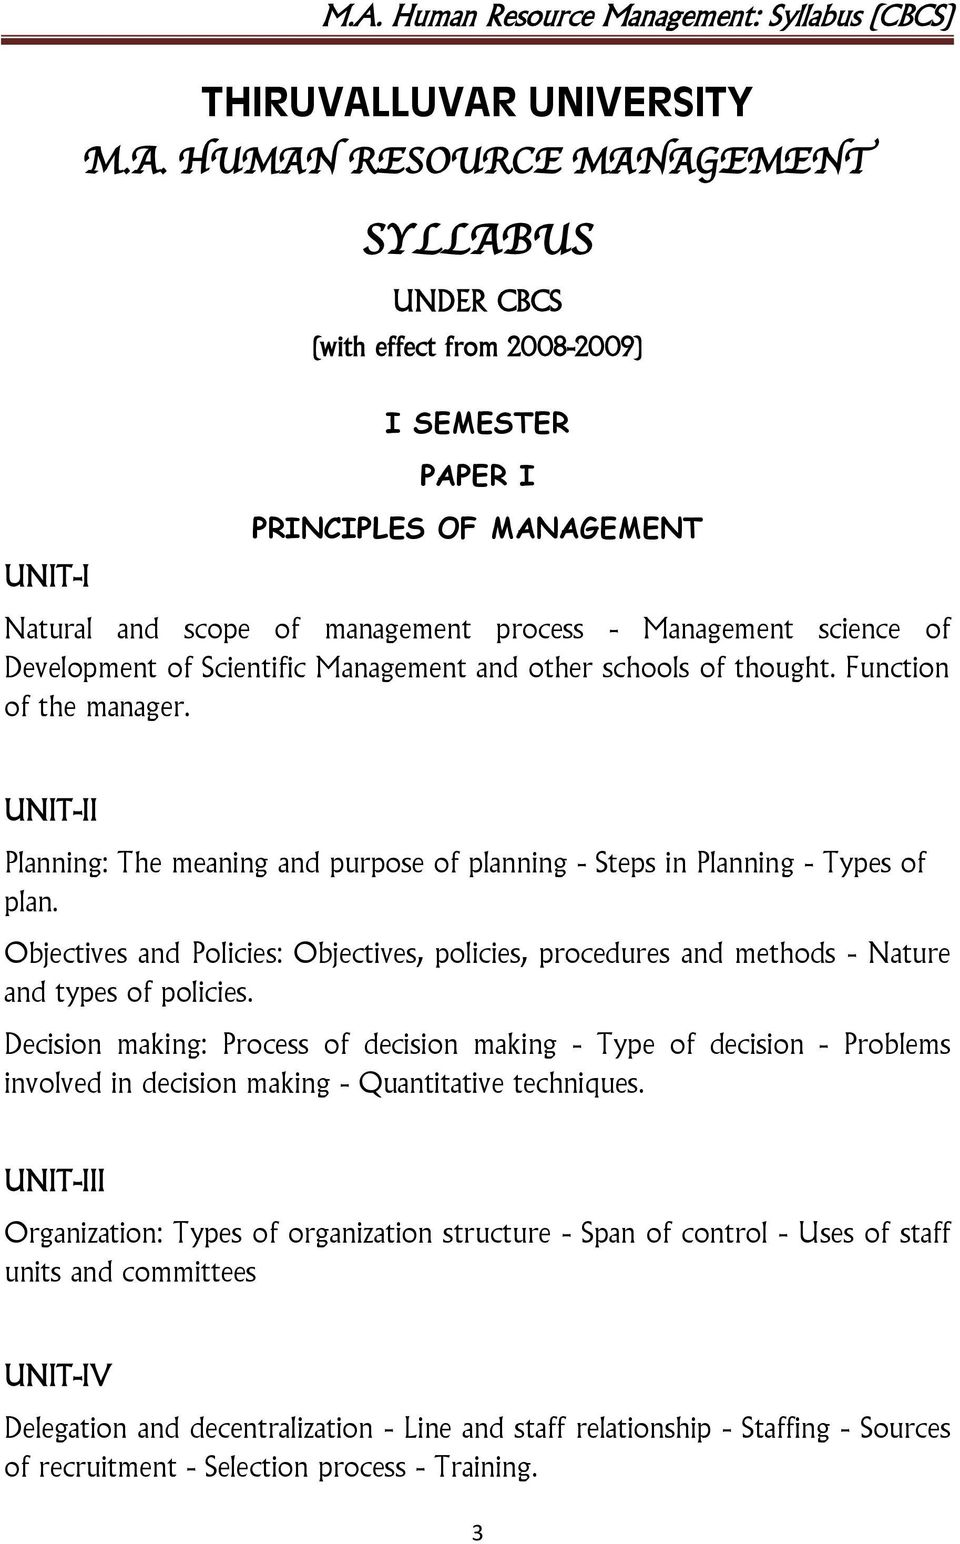 Management science of Development of Scientific Management and other schools of thought. Function of the manager.